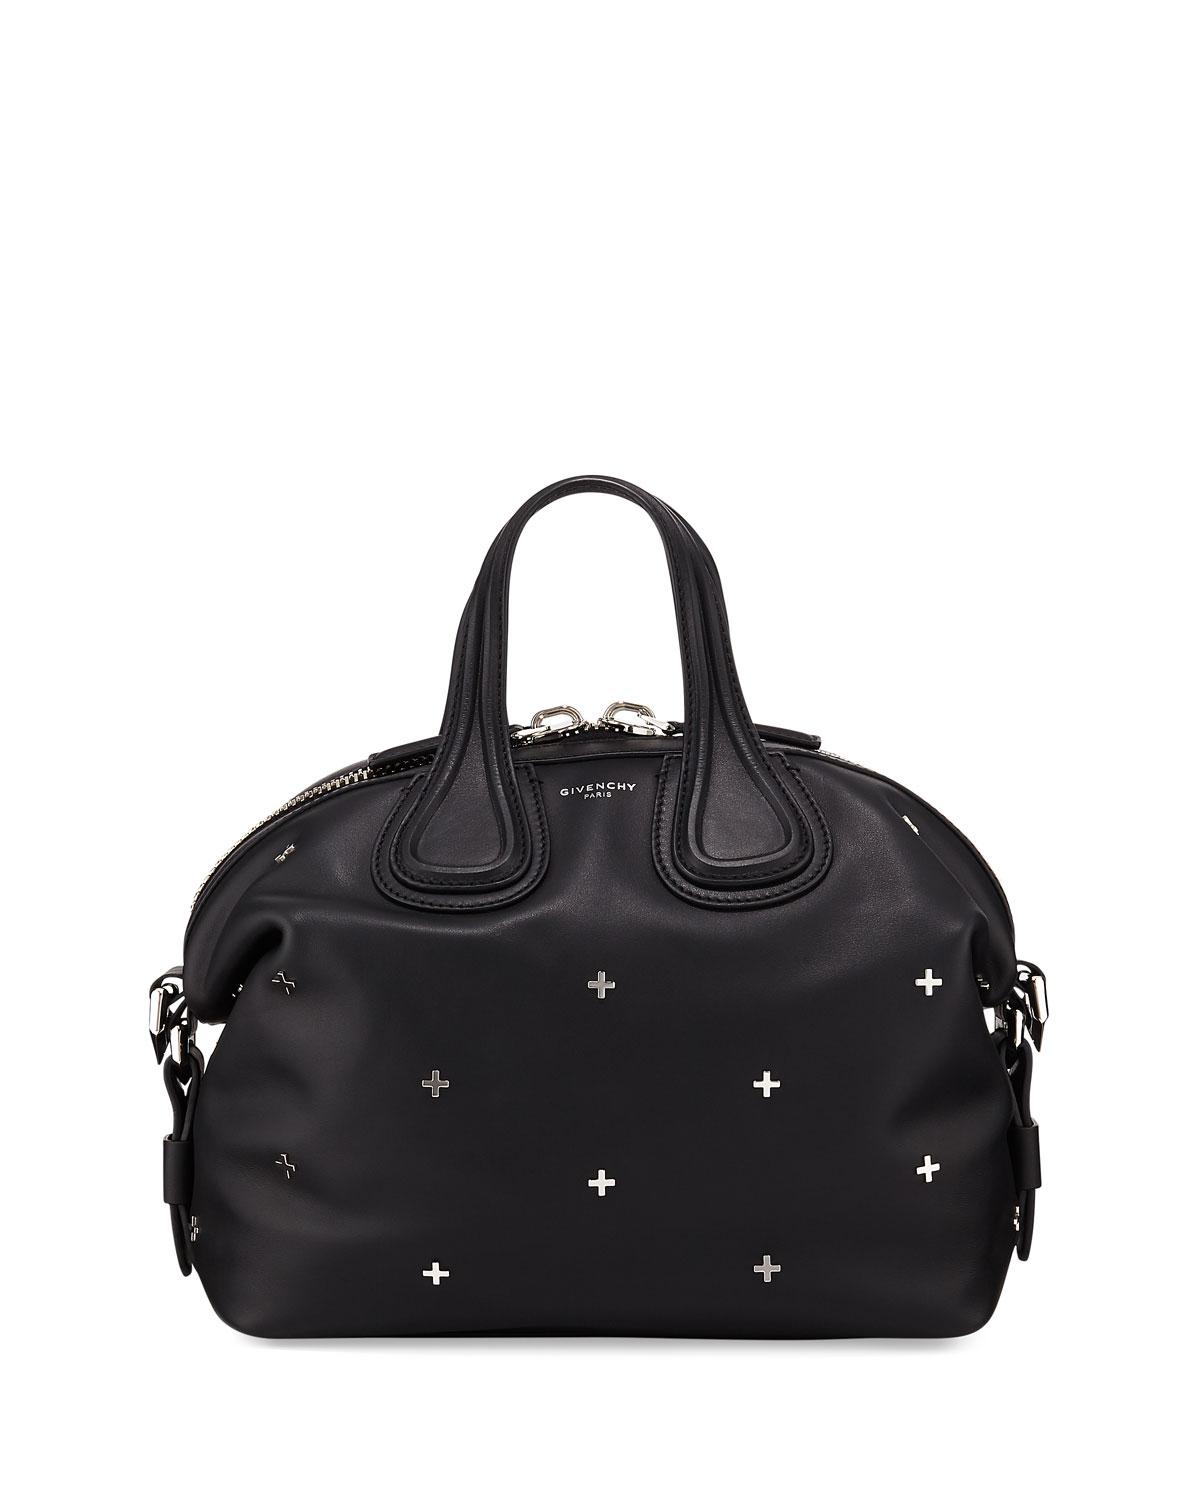 86eb90e14b Lyst - Givenchy Nightingale Small Studded Leather Satchel Bag in Black